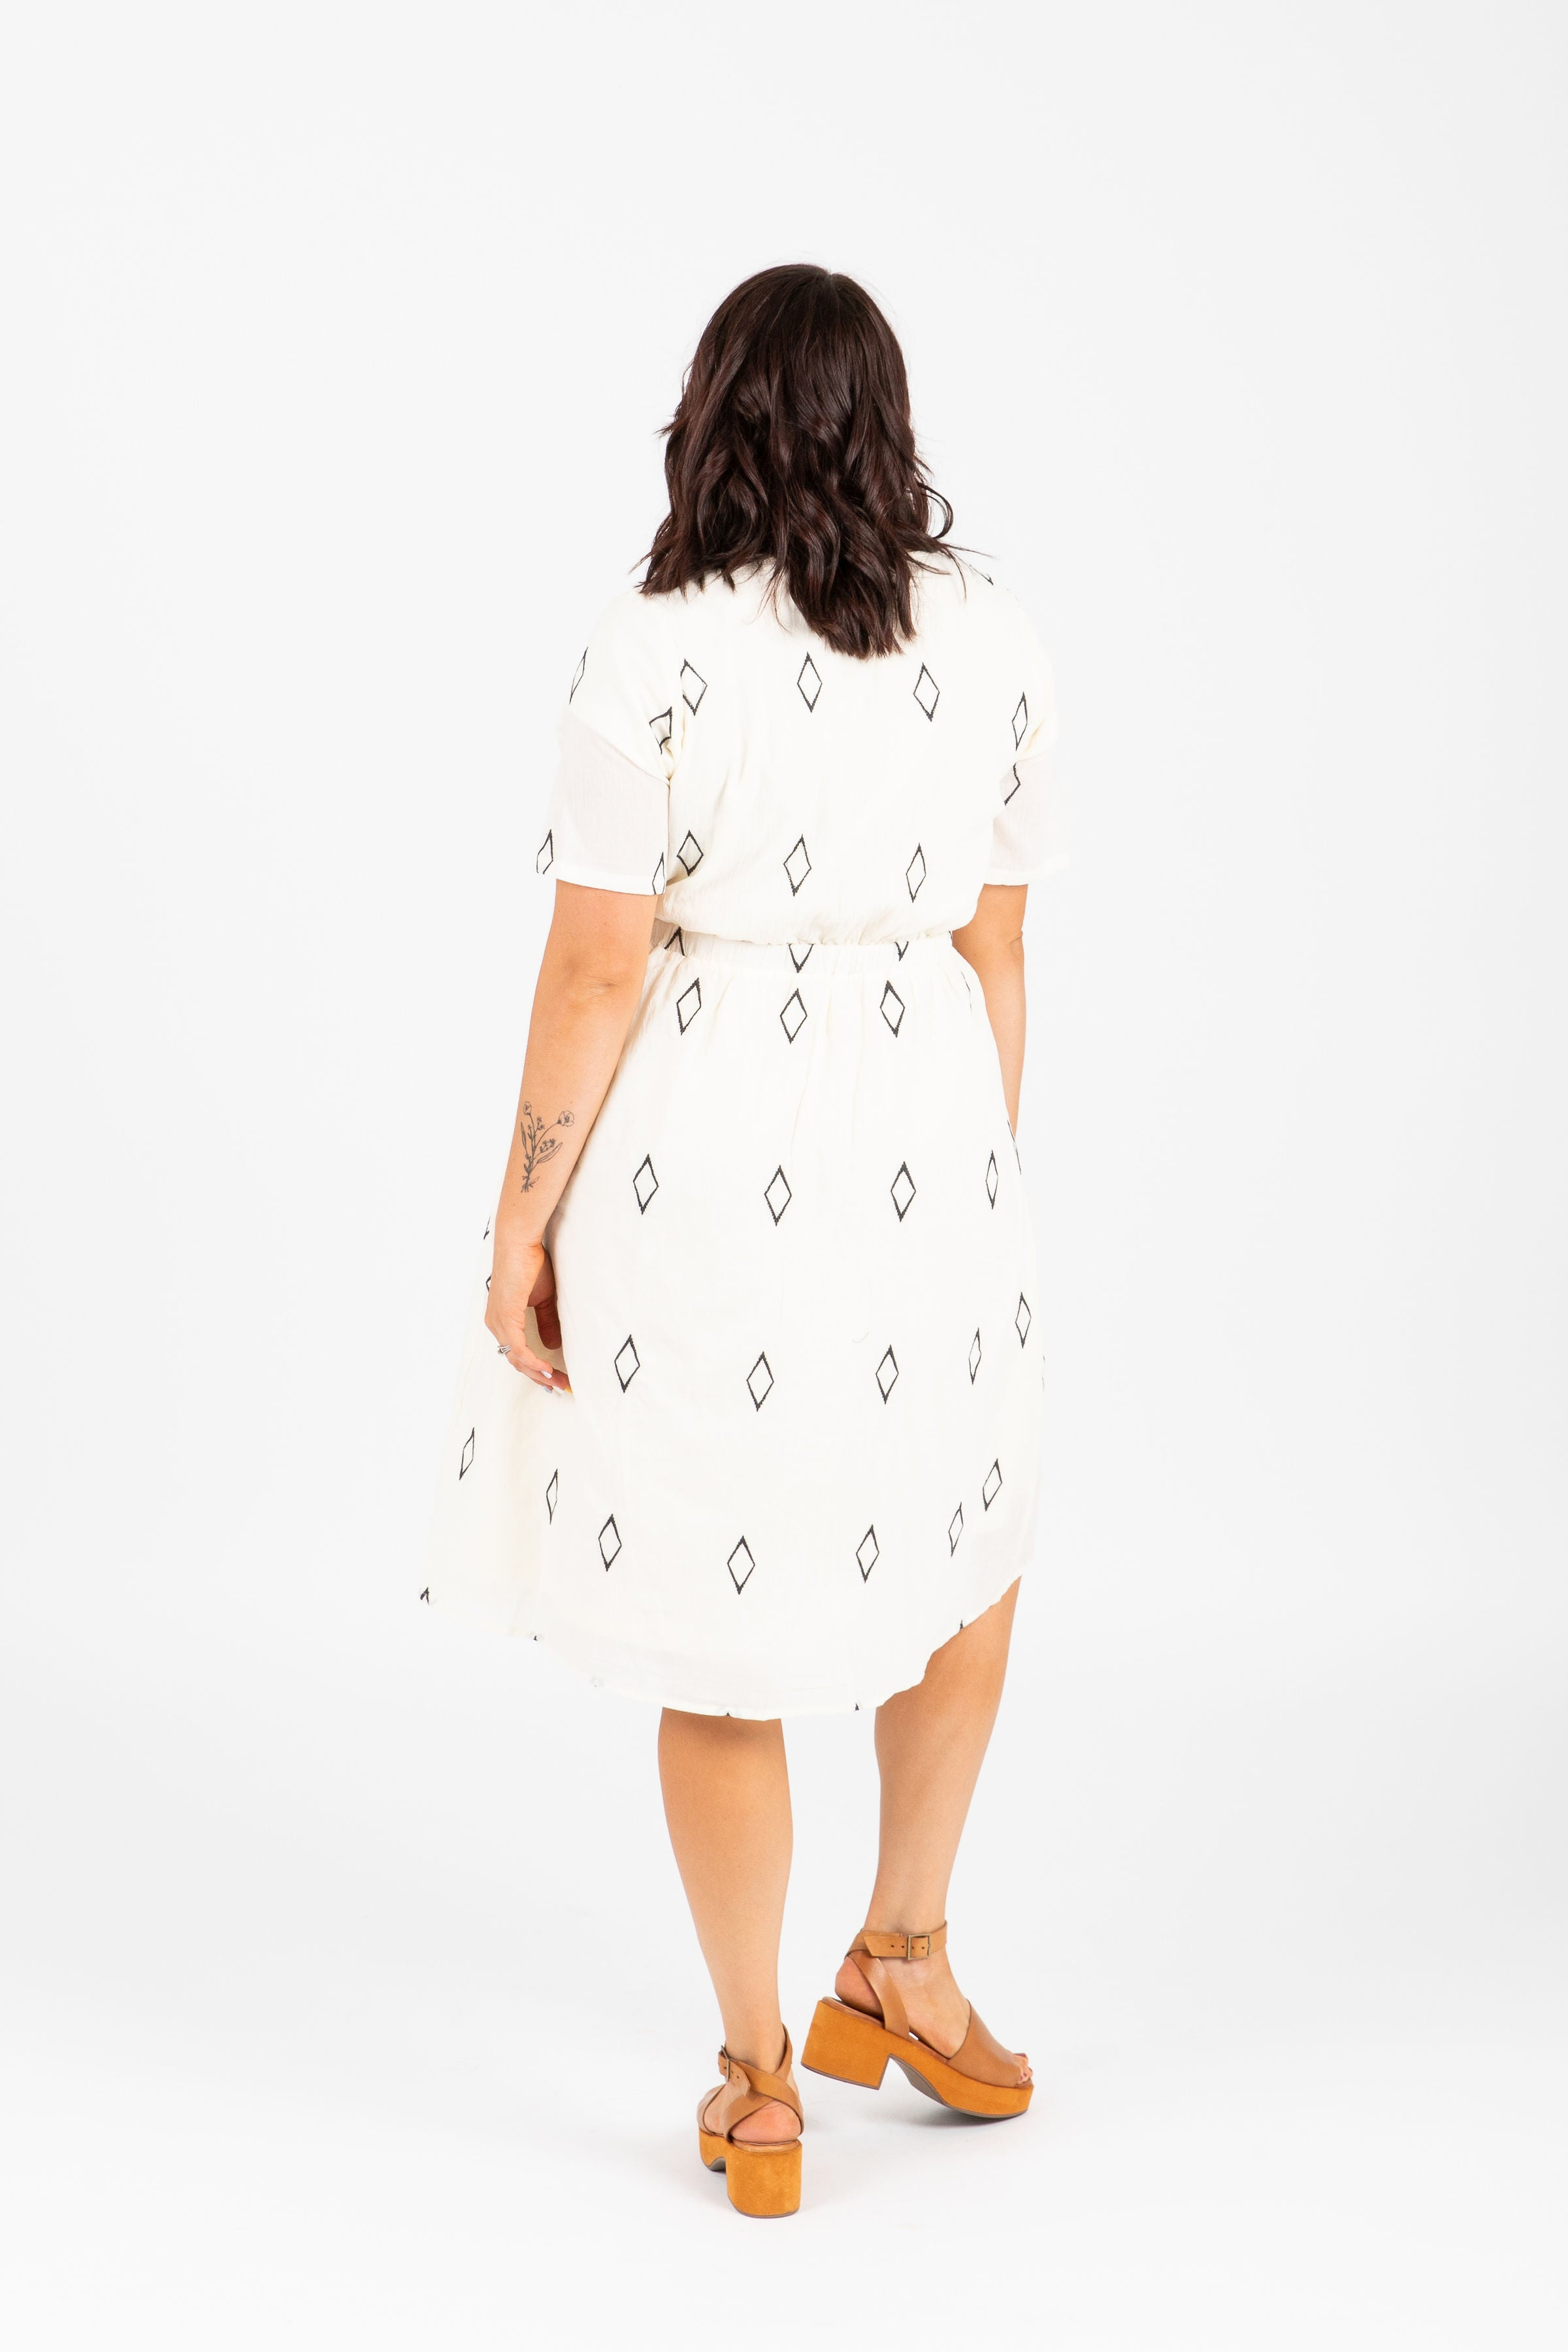 Piper & Scoot: The Danielle Diamond Empire Dress in White